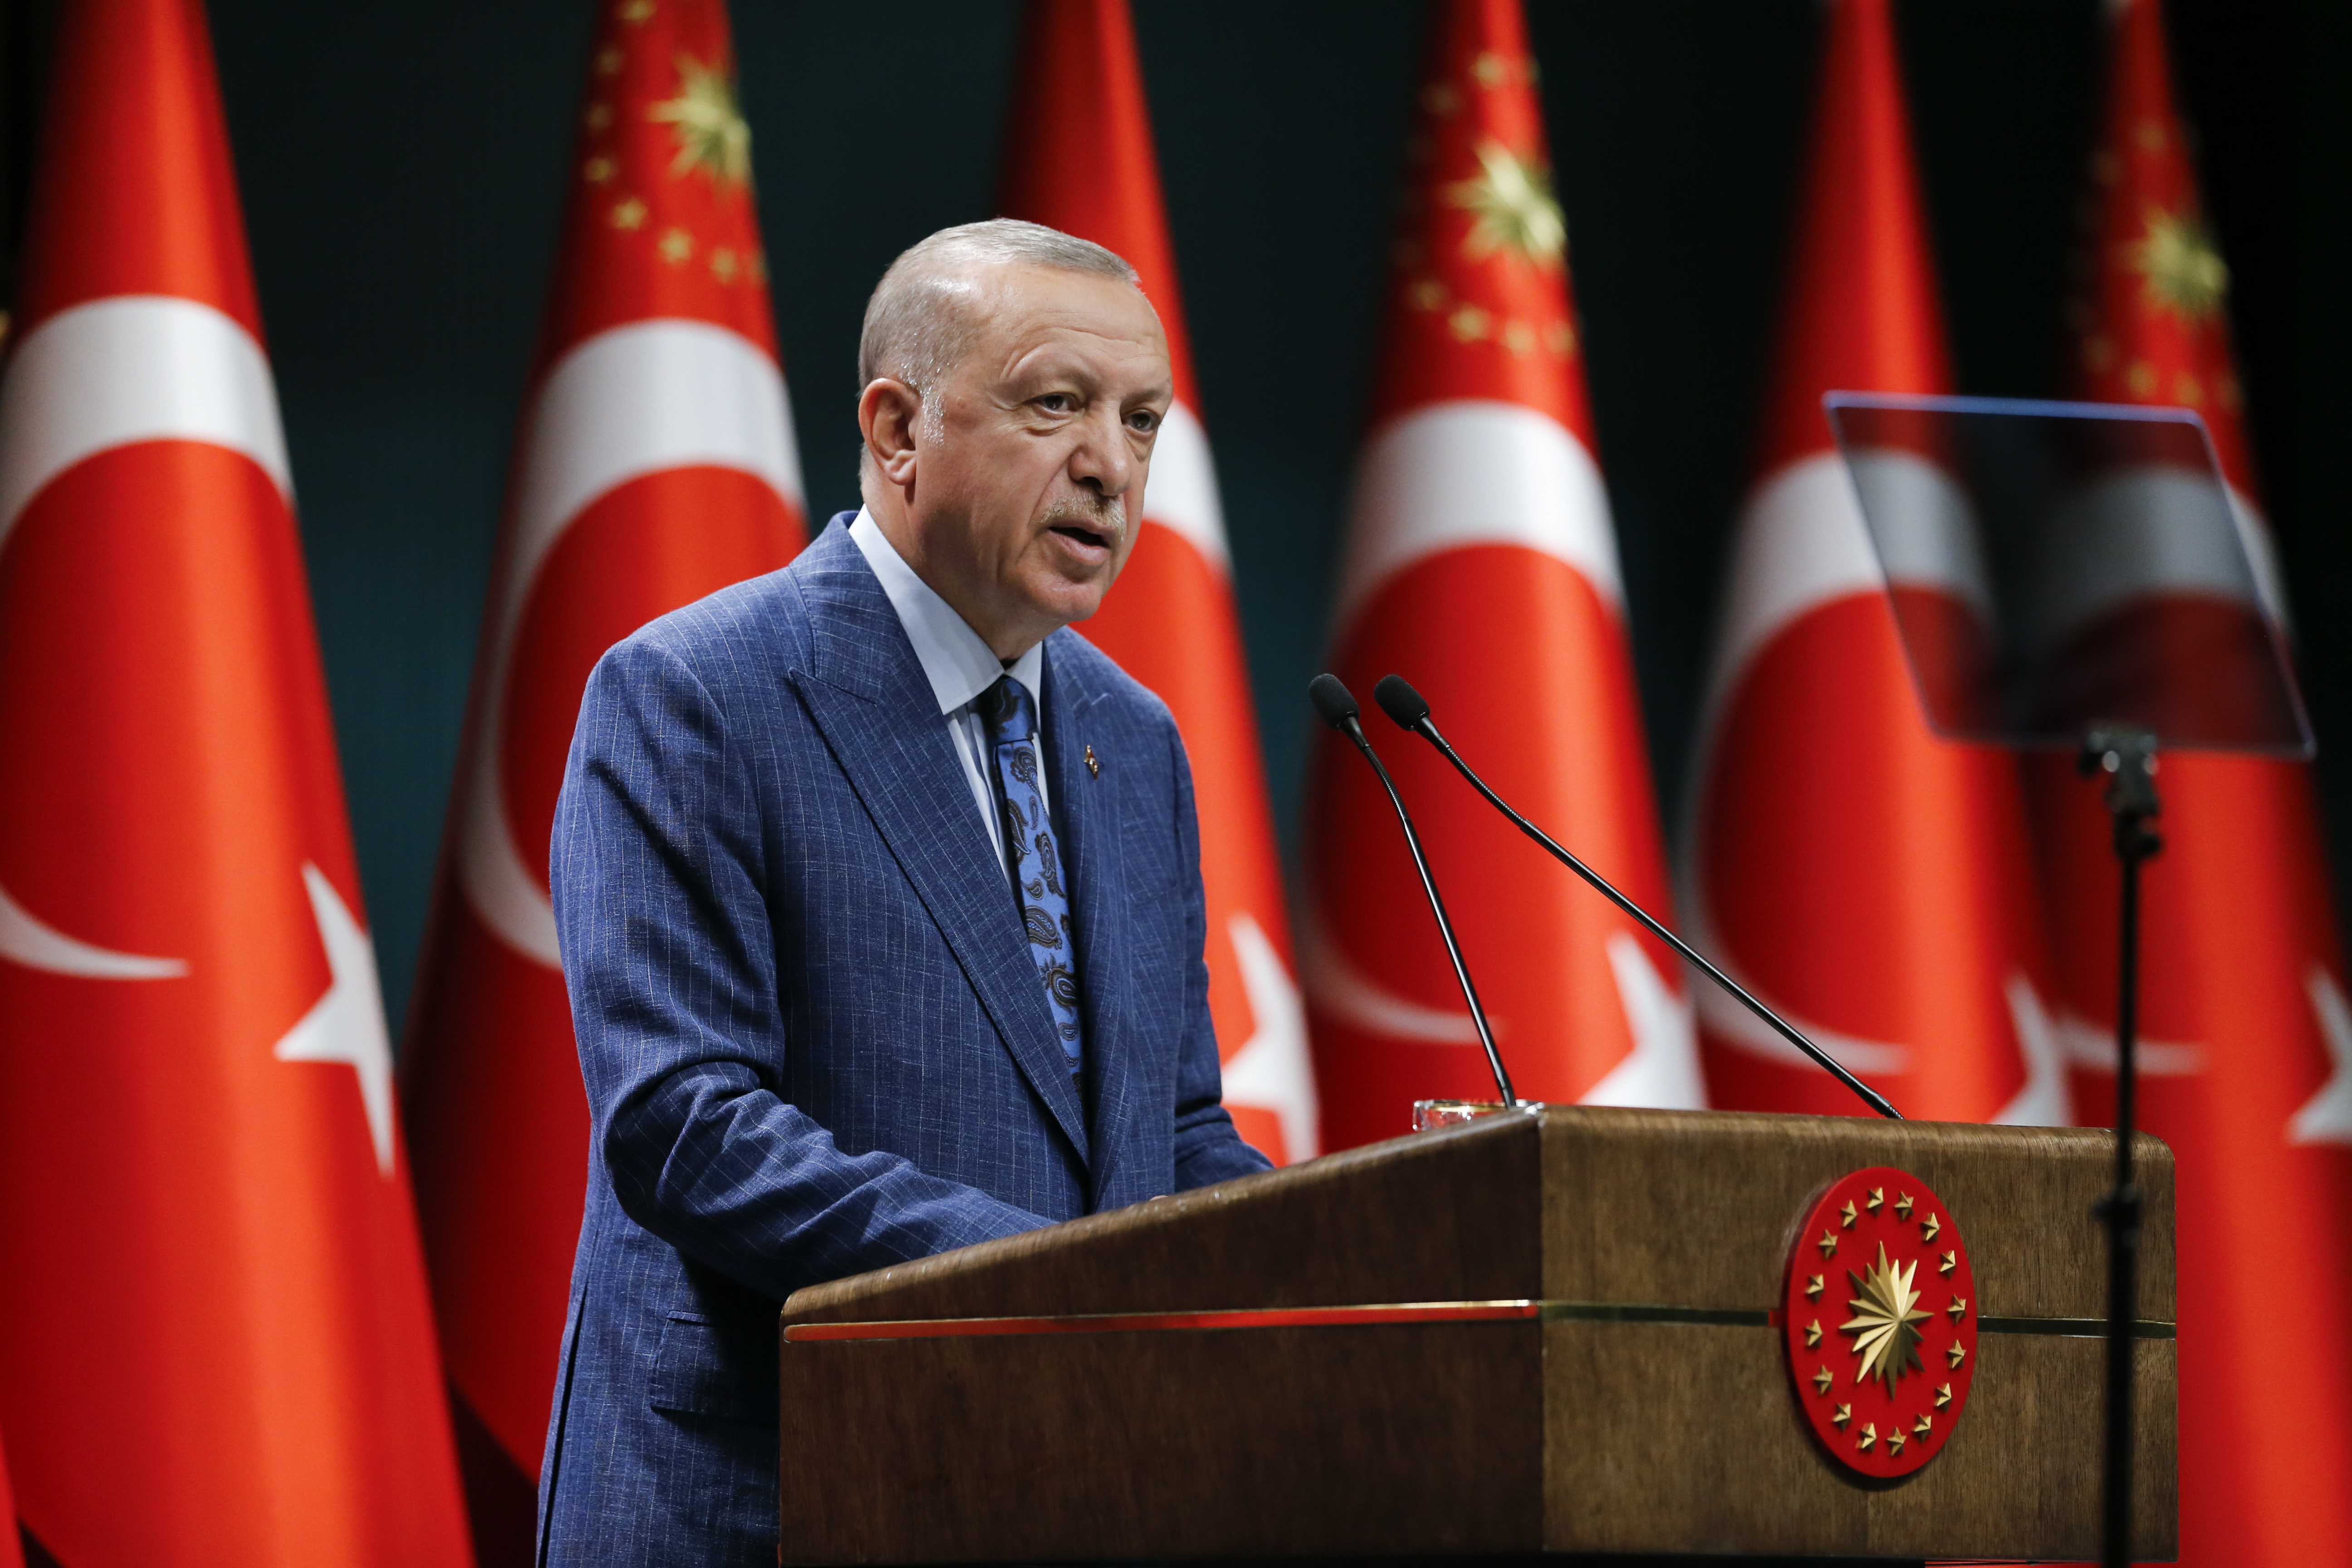 President Erdoğan held a press conference following the meeting of the Presidential Cabinet at the Presidential Complex